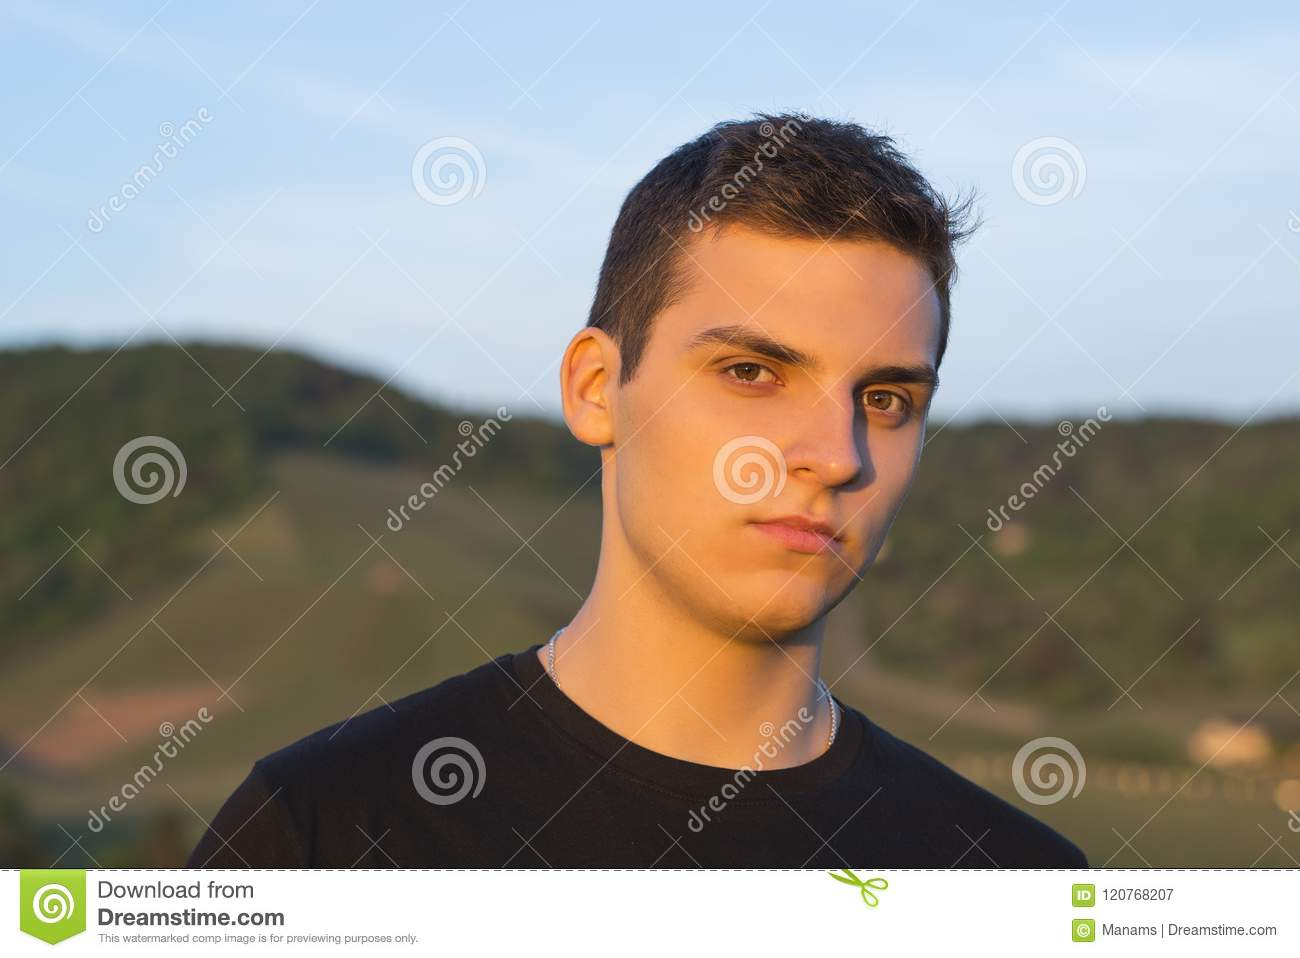 Young Handsome Man With Brown Eyes Looking At The Camera At Sunset